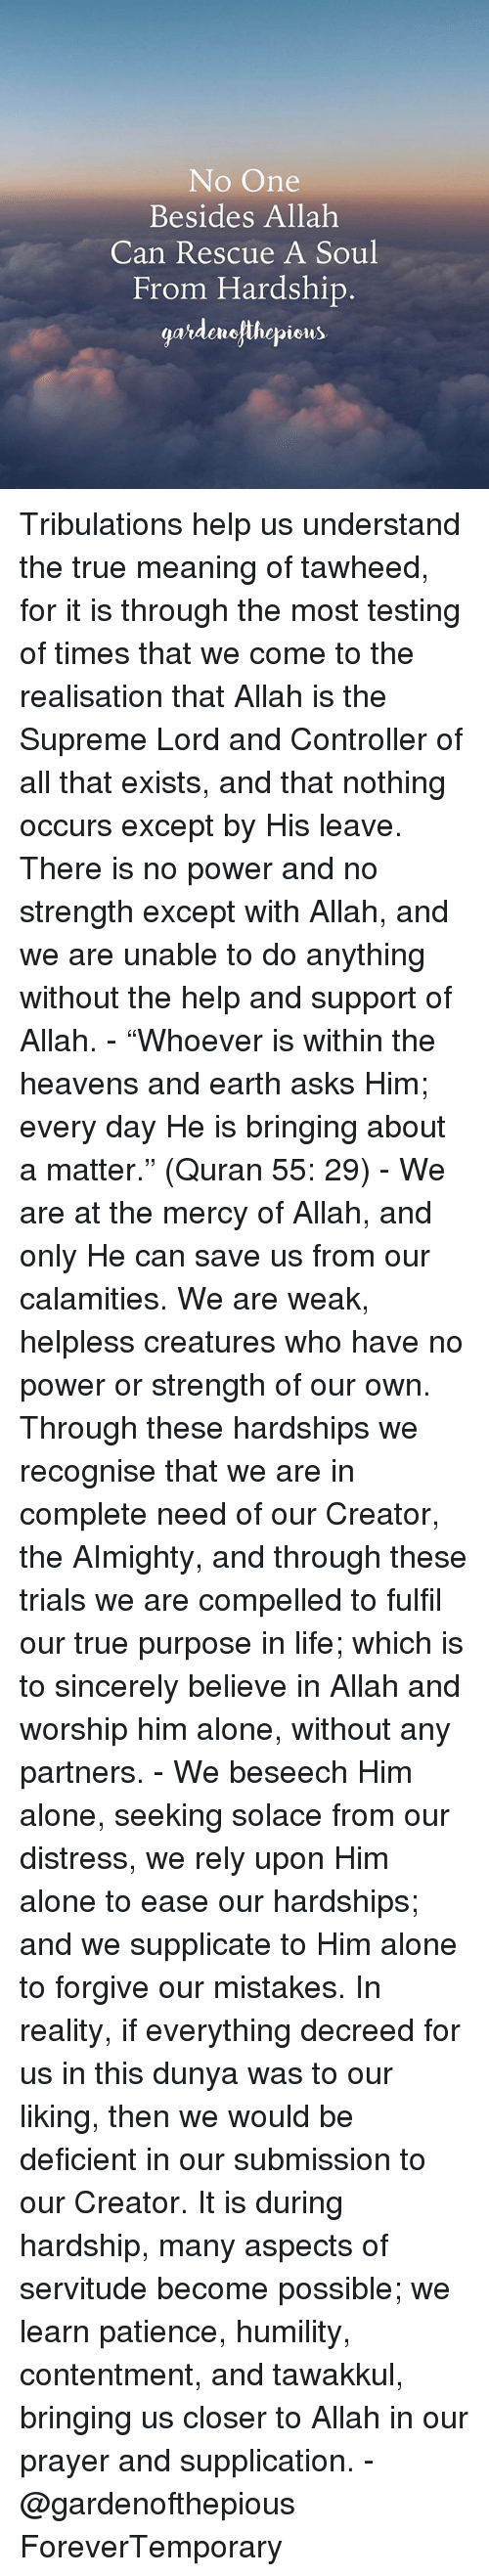 "Helplessness: No One  Besides Allah  Can Rescue A Soul  From Hardship  gardeurofthepions Tribulations help us understand the true meaning of tawheed, for it is through the most testing of times that we come to the realisation that Allah is the Supreme Lord and Controller of all that exists, and that nothing occurs except by His leave. There is no power and no strength except with Allah, and we are unable to do anything without the help and support of Allah. - ""Whoever is within the heavens and earth asks Him; every day He is bringing about a matter."" (Quran 55: 29) - We are at the mercy of Allah, and only He can save us from our calamities. We are weak, helpless creatures who have no power or strength of our own. Through these hardships we recognise that we are in complete need of our Creator, the AImighty, and through these trials we are compelled to fulfil our true purpose in life; which is to sincerely believe in Allah and worship him alone, without any partners. - We beseech Him alone, seeking solace from our distress, we rely upon Him alone to ease our hardships; and we supplicate to Him alone to forgive our mistakes. In reality, if everything decreed for us in this dunya was to our liking, then we would be deficient in our submission to our Creator. It is during hardship, many aspects of servitude become possible; we learn patience, humility, contentment, and tawakkul, bringing us closer to Allah in our prayer and supplication. - @gardenofthepious ForeverTemporary"